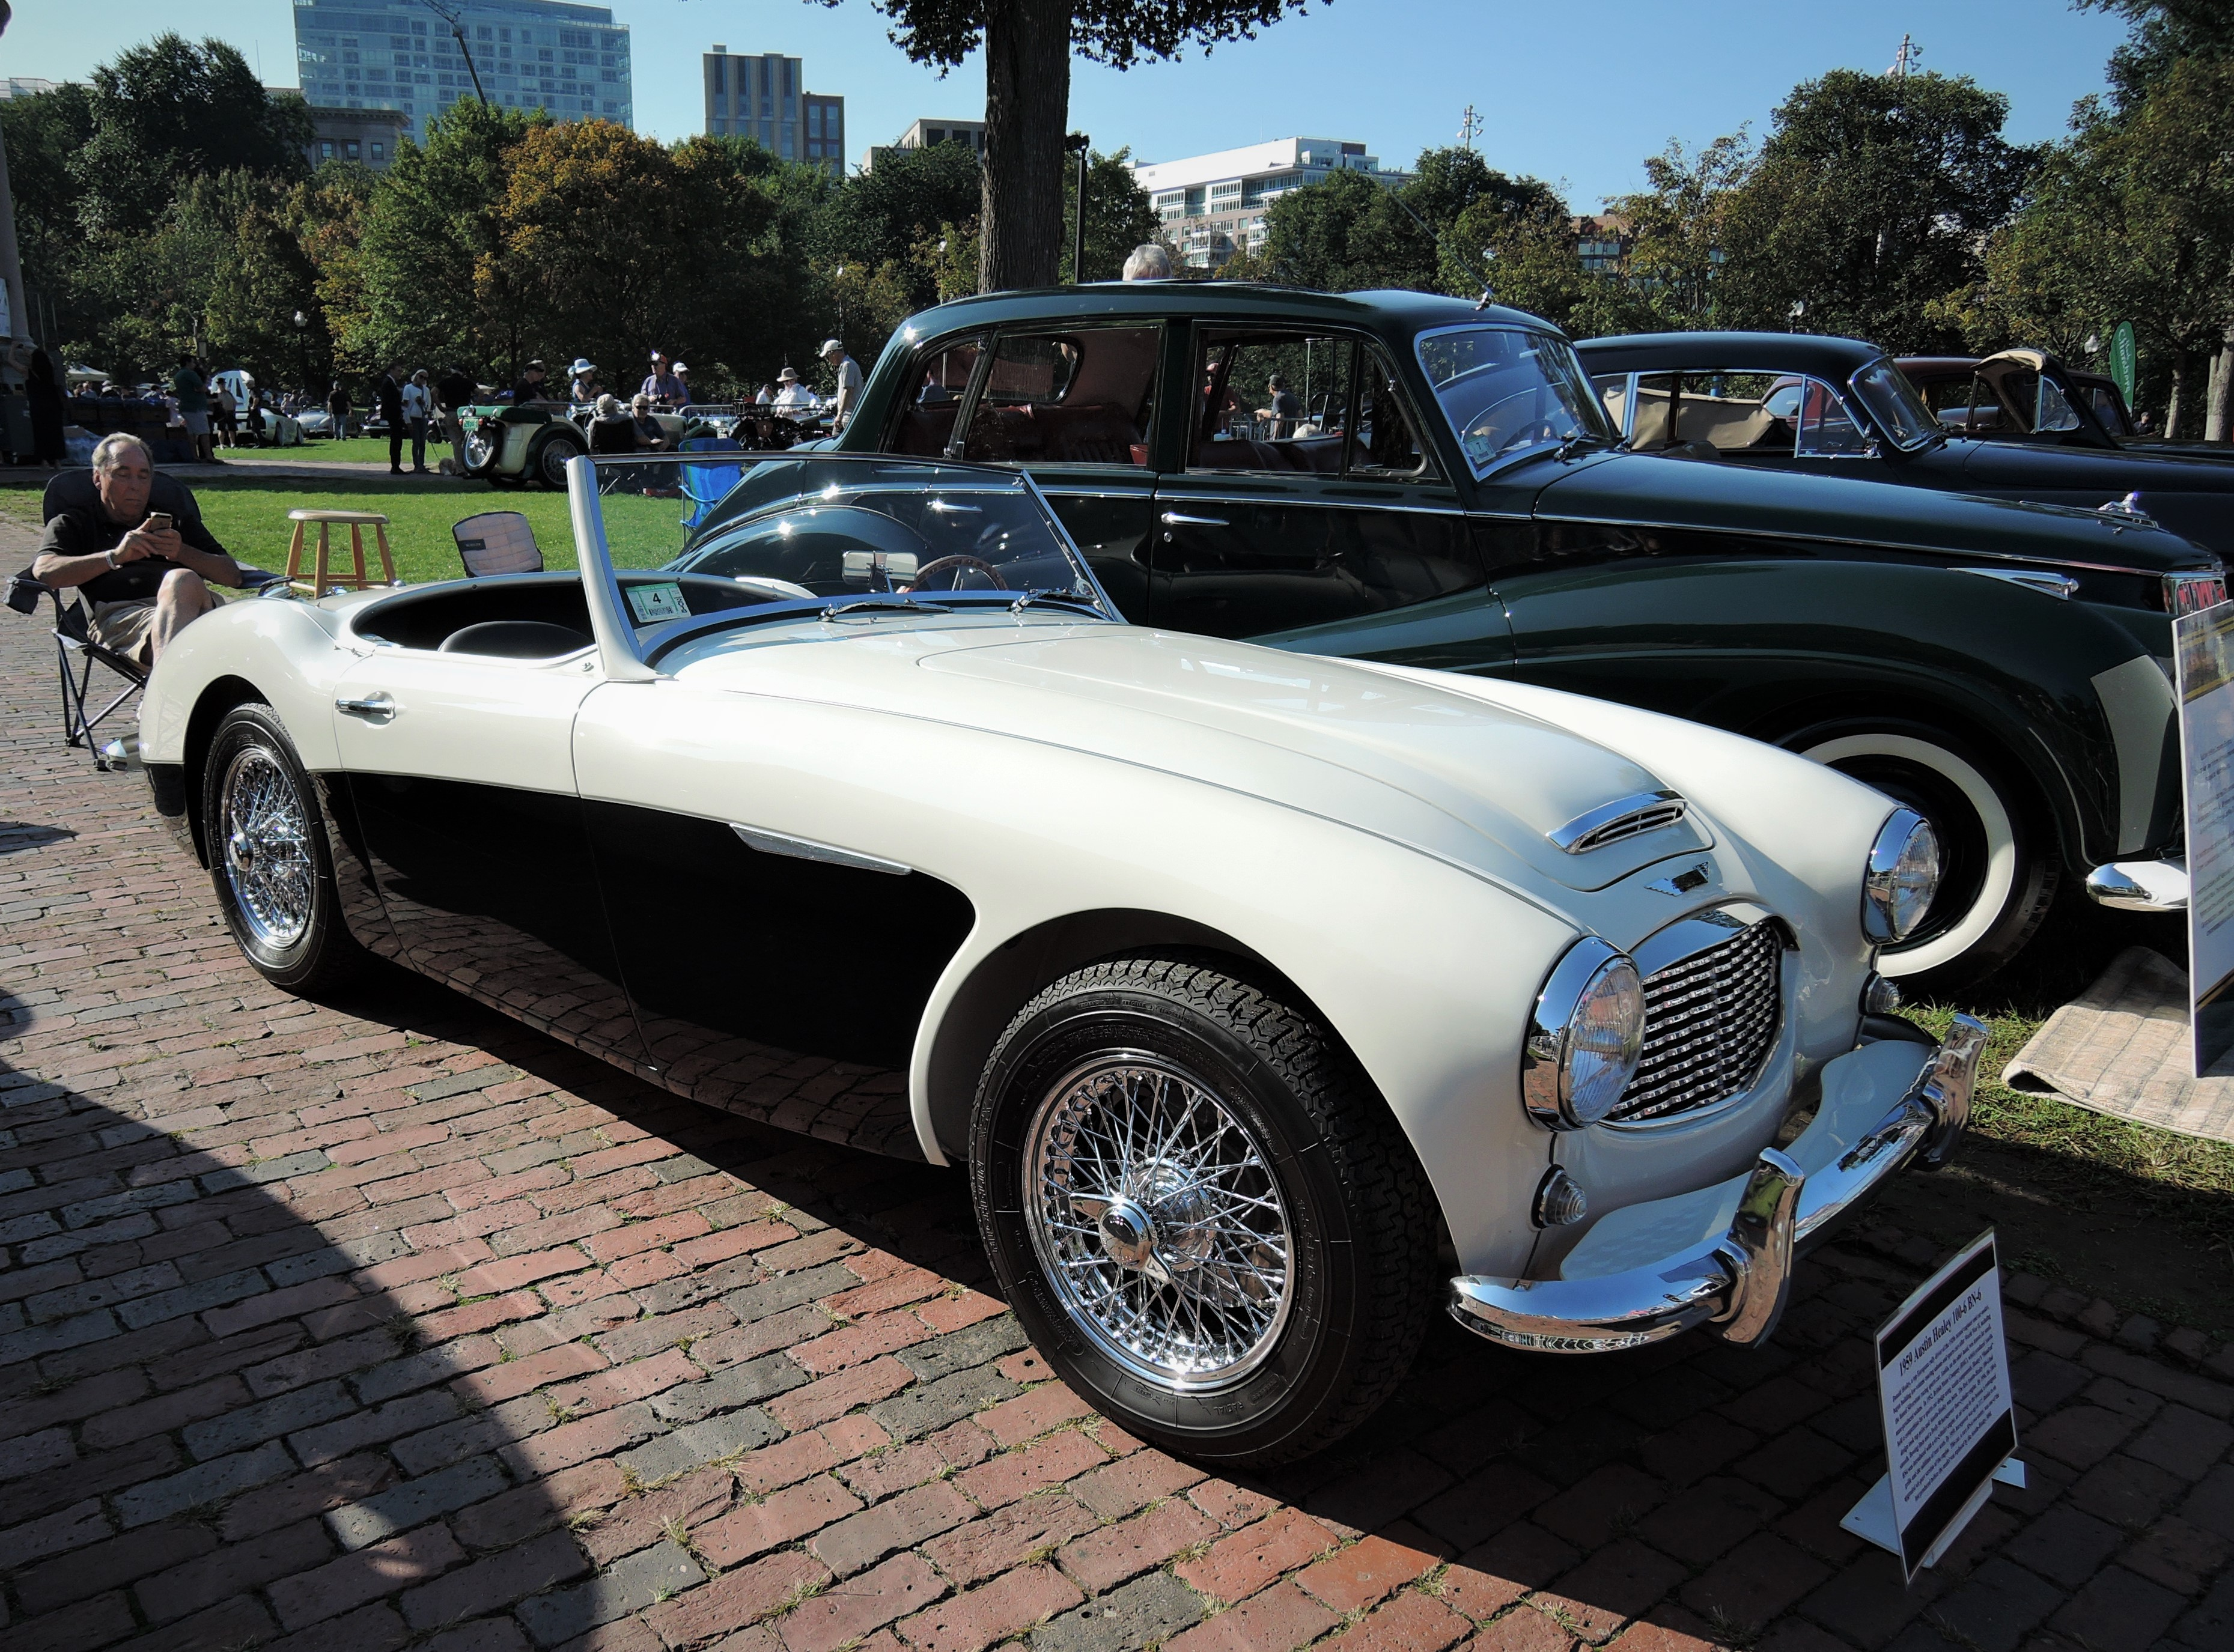 white/black 1959 Austin-Healey 100-6 BN6 - The Boston Cup 2017